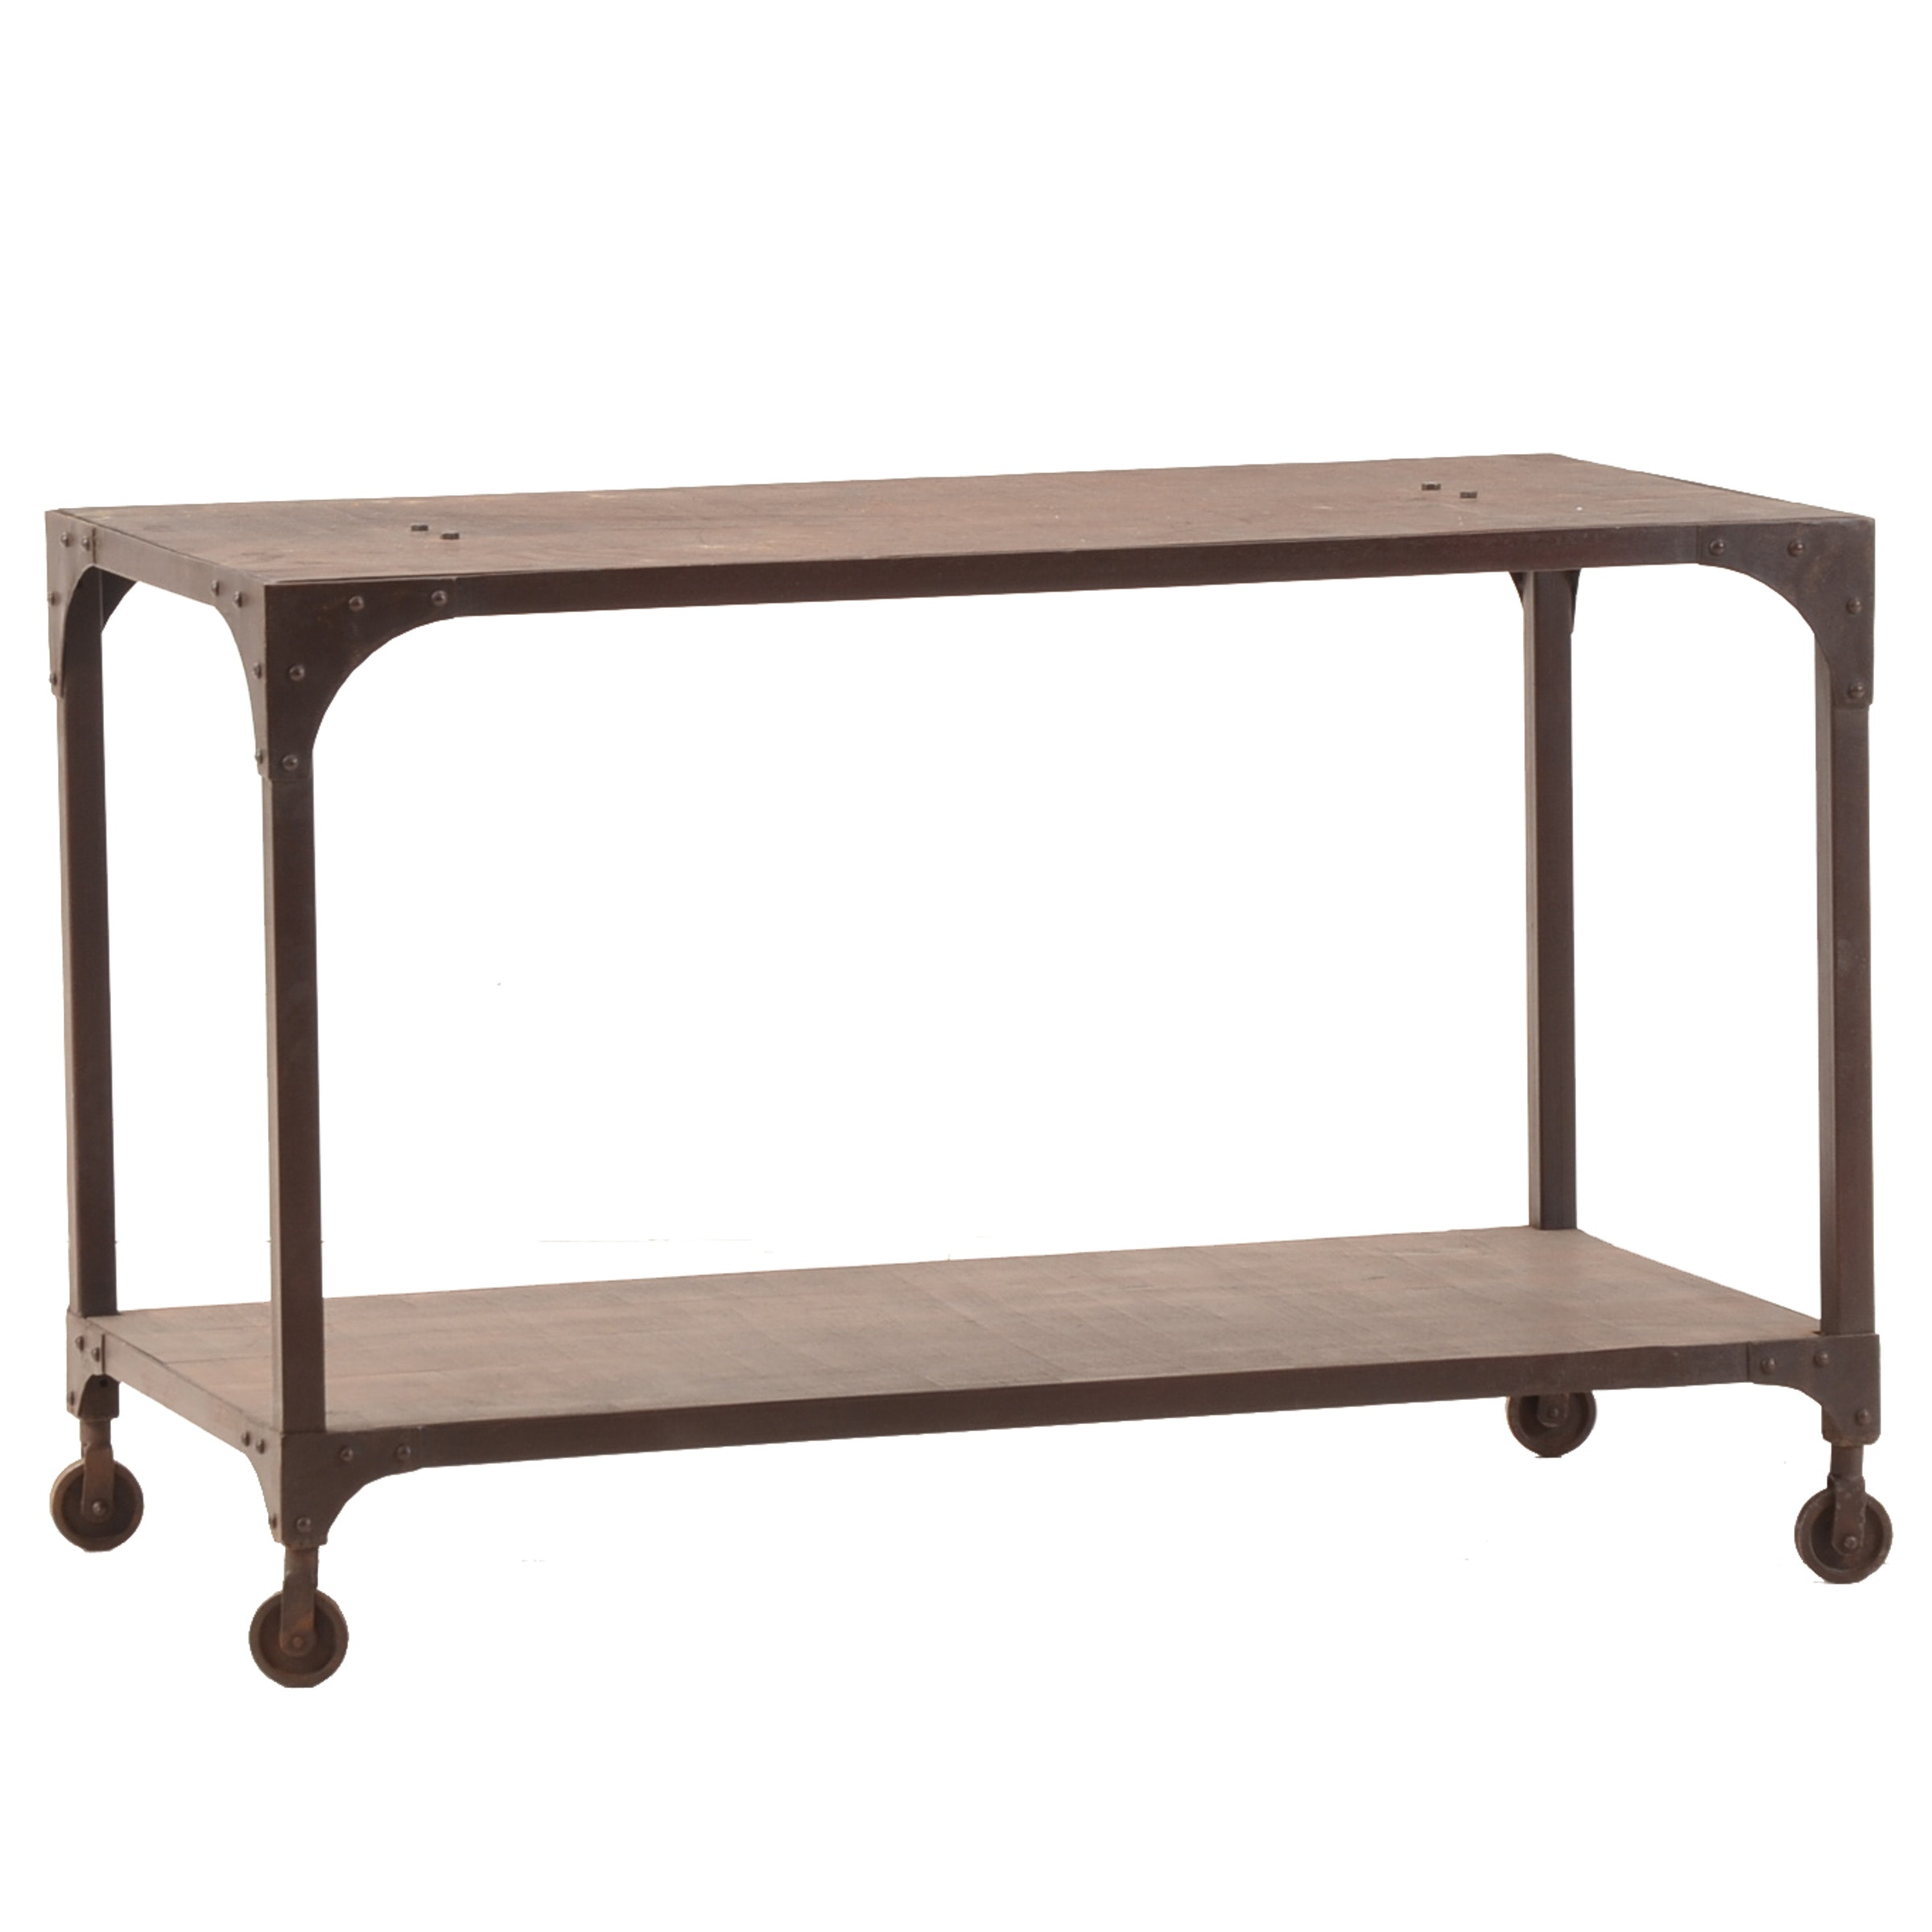 Contemporary Industrial Style Cart Table